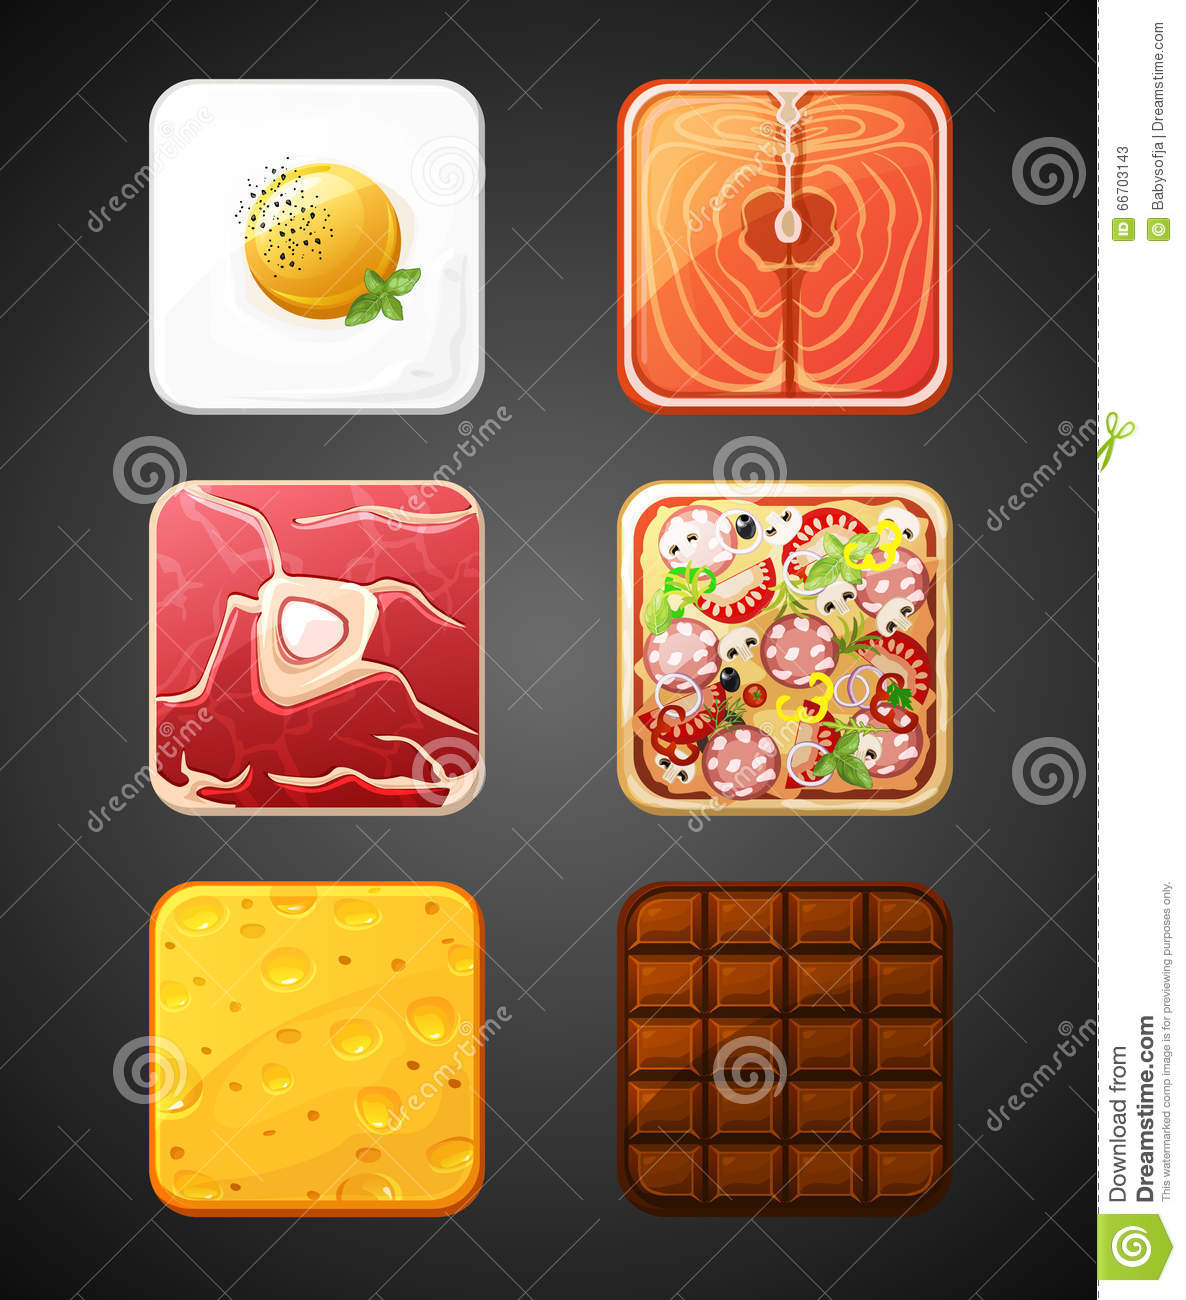 Square food icons stock vector  Illustration of steak - 66703143